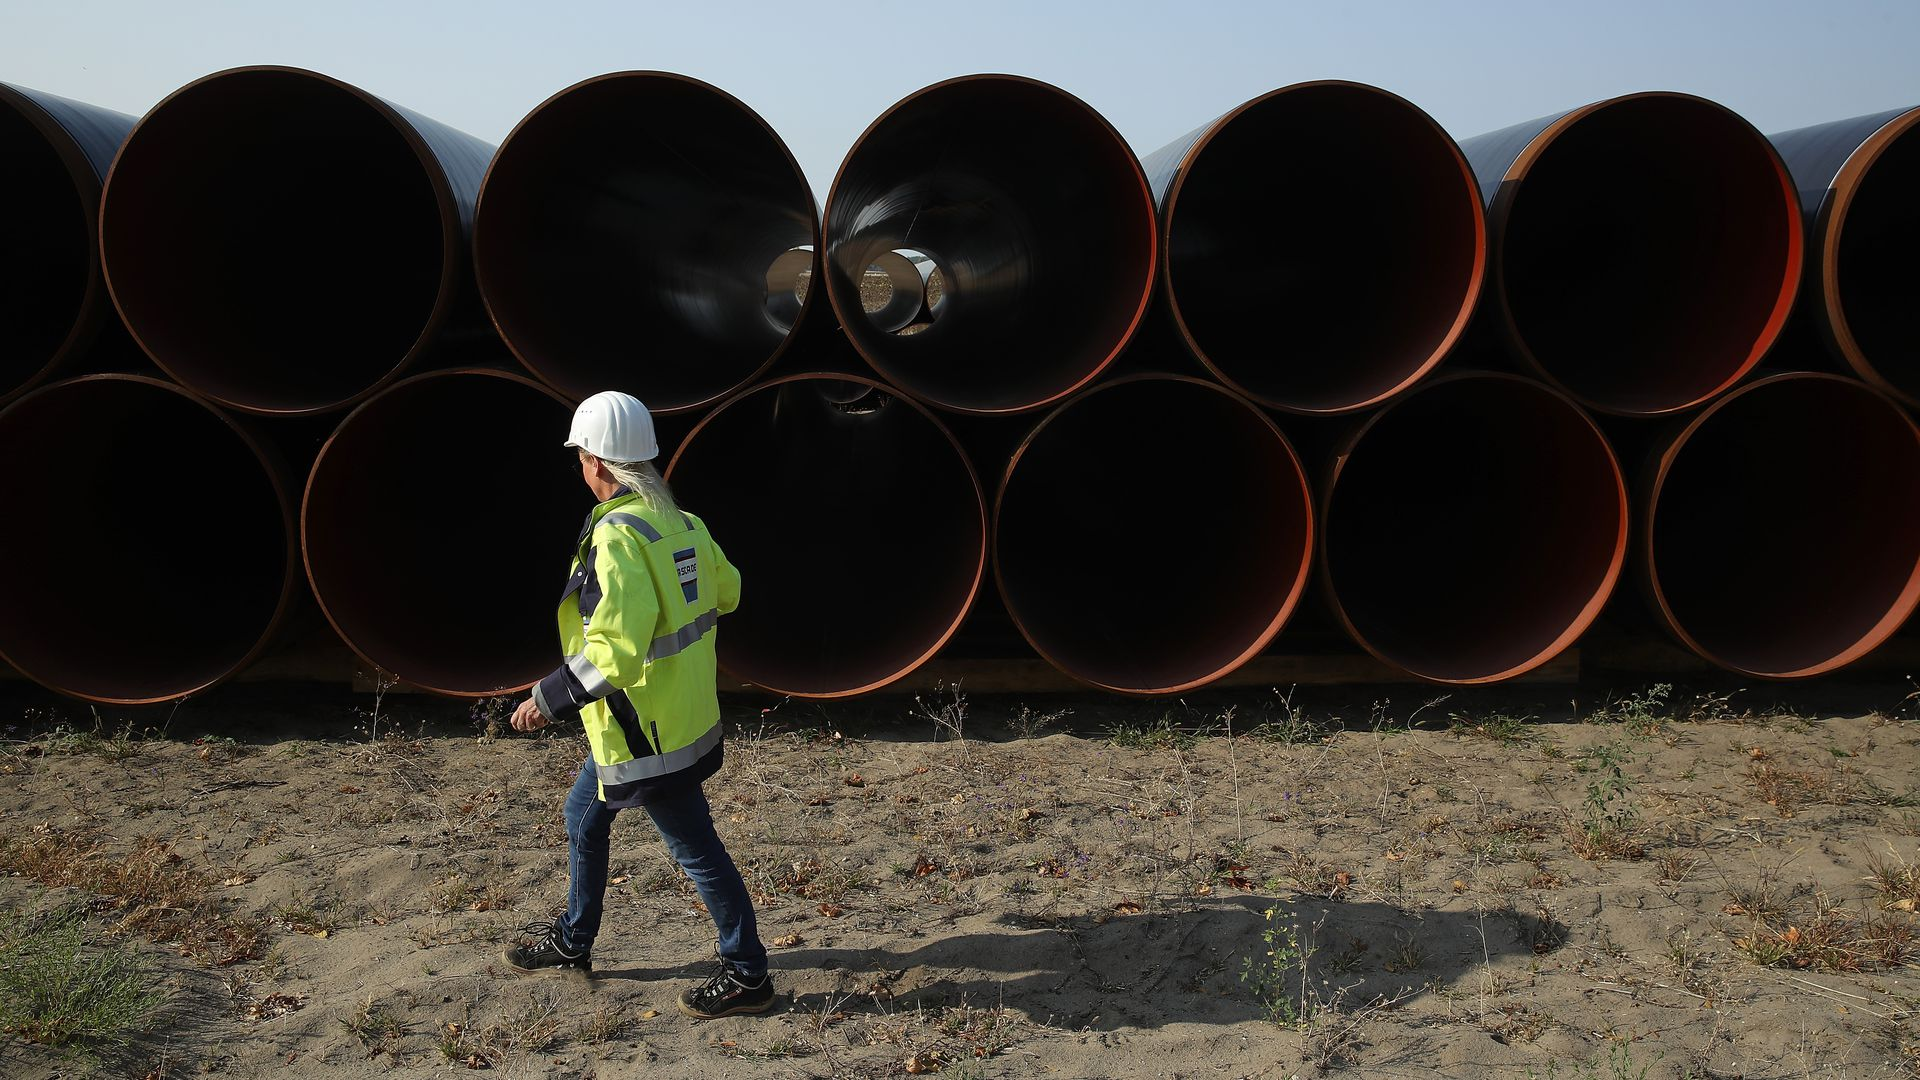 An employee of GASCADE Gastransport GmbH walks among sections of steel pipe stacked ahead of construction of the Eugal natural gas pipeline